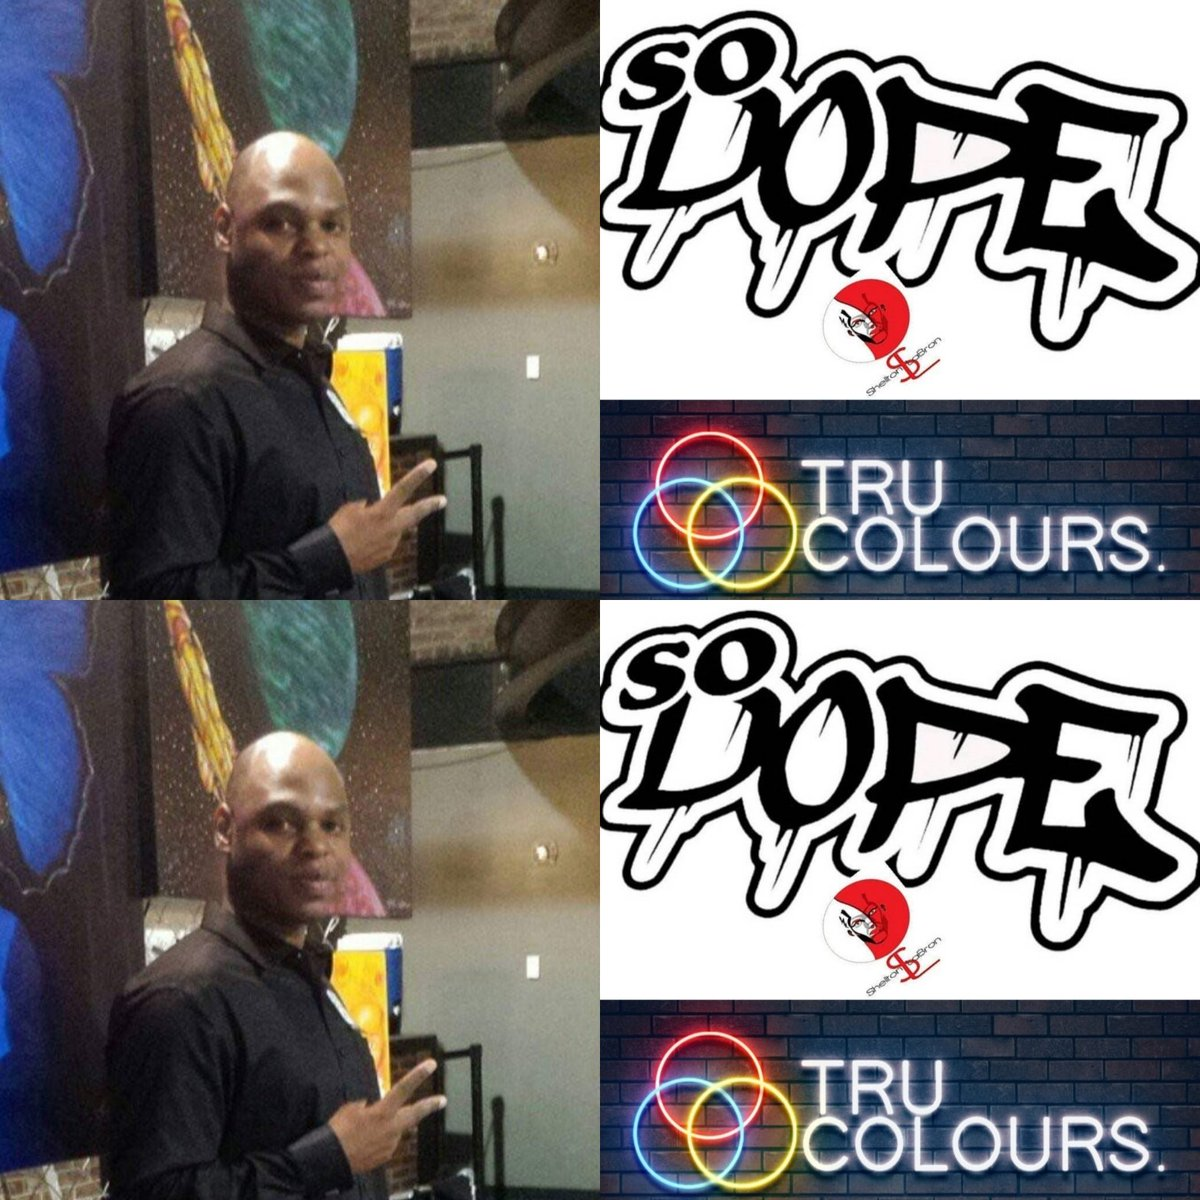 Tru Colours - Art Basel Miami - ArtpocalypseATL - SHELLTON LABRON - 12/6 & 12/7 #art #artist #visualart #visualartist #painting #creativity #fineart #artwork #worksofart #imagery #gallery #color #form #line #artbasel #painter #dreamer #dope #imagination #drawing #decor #passion